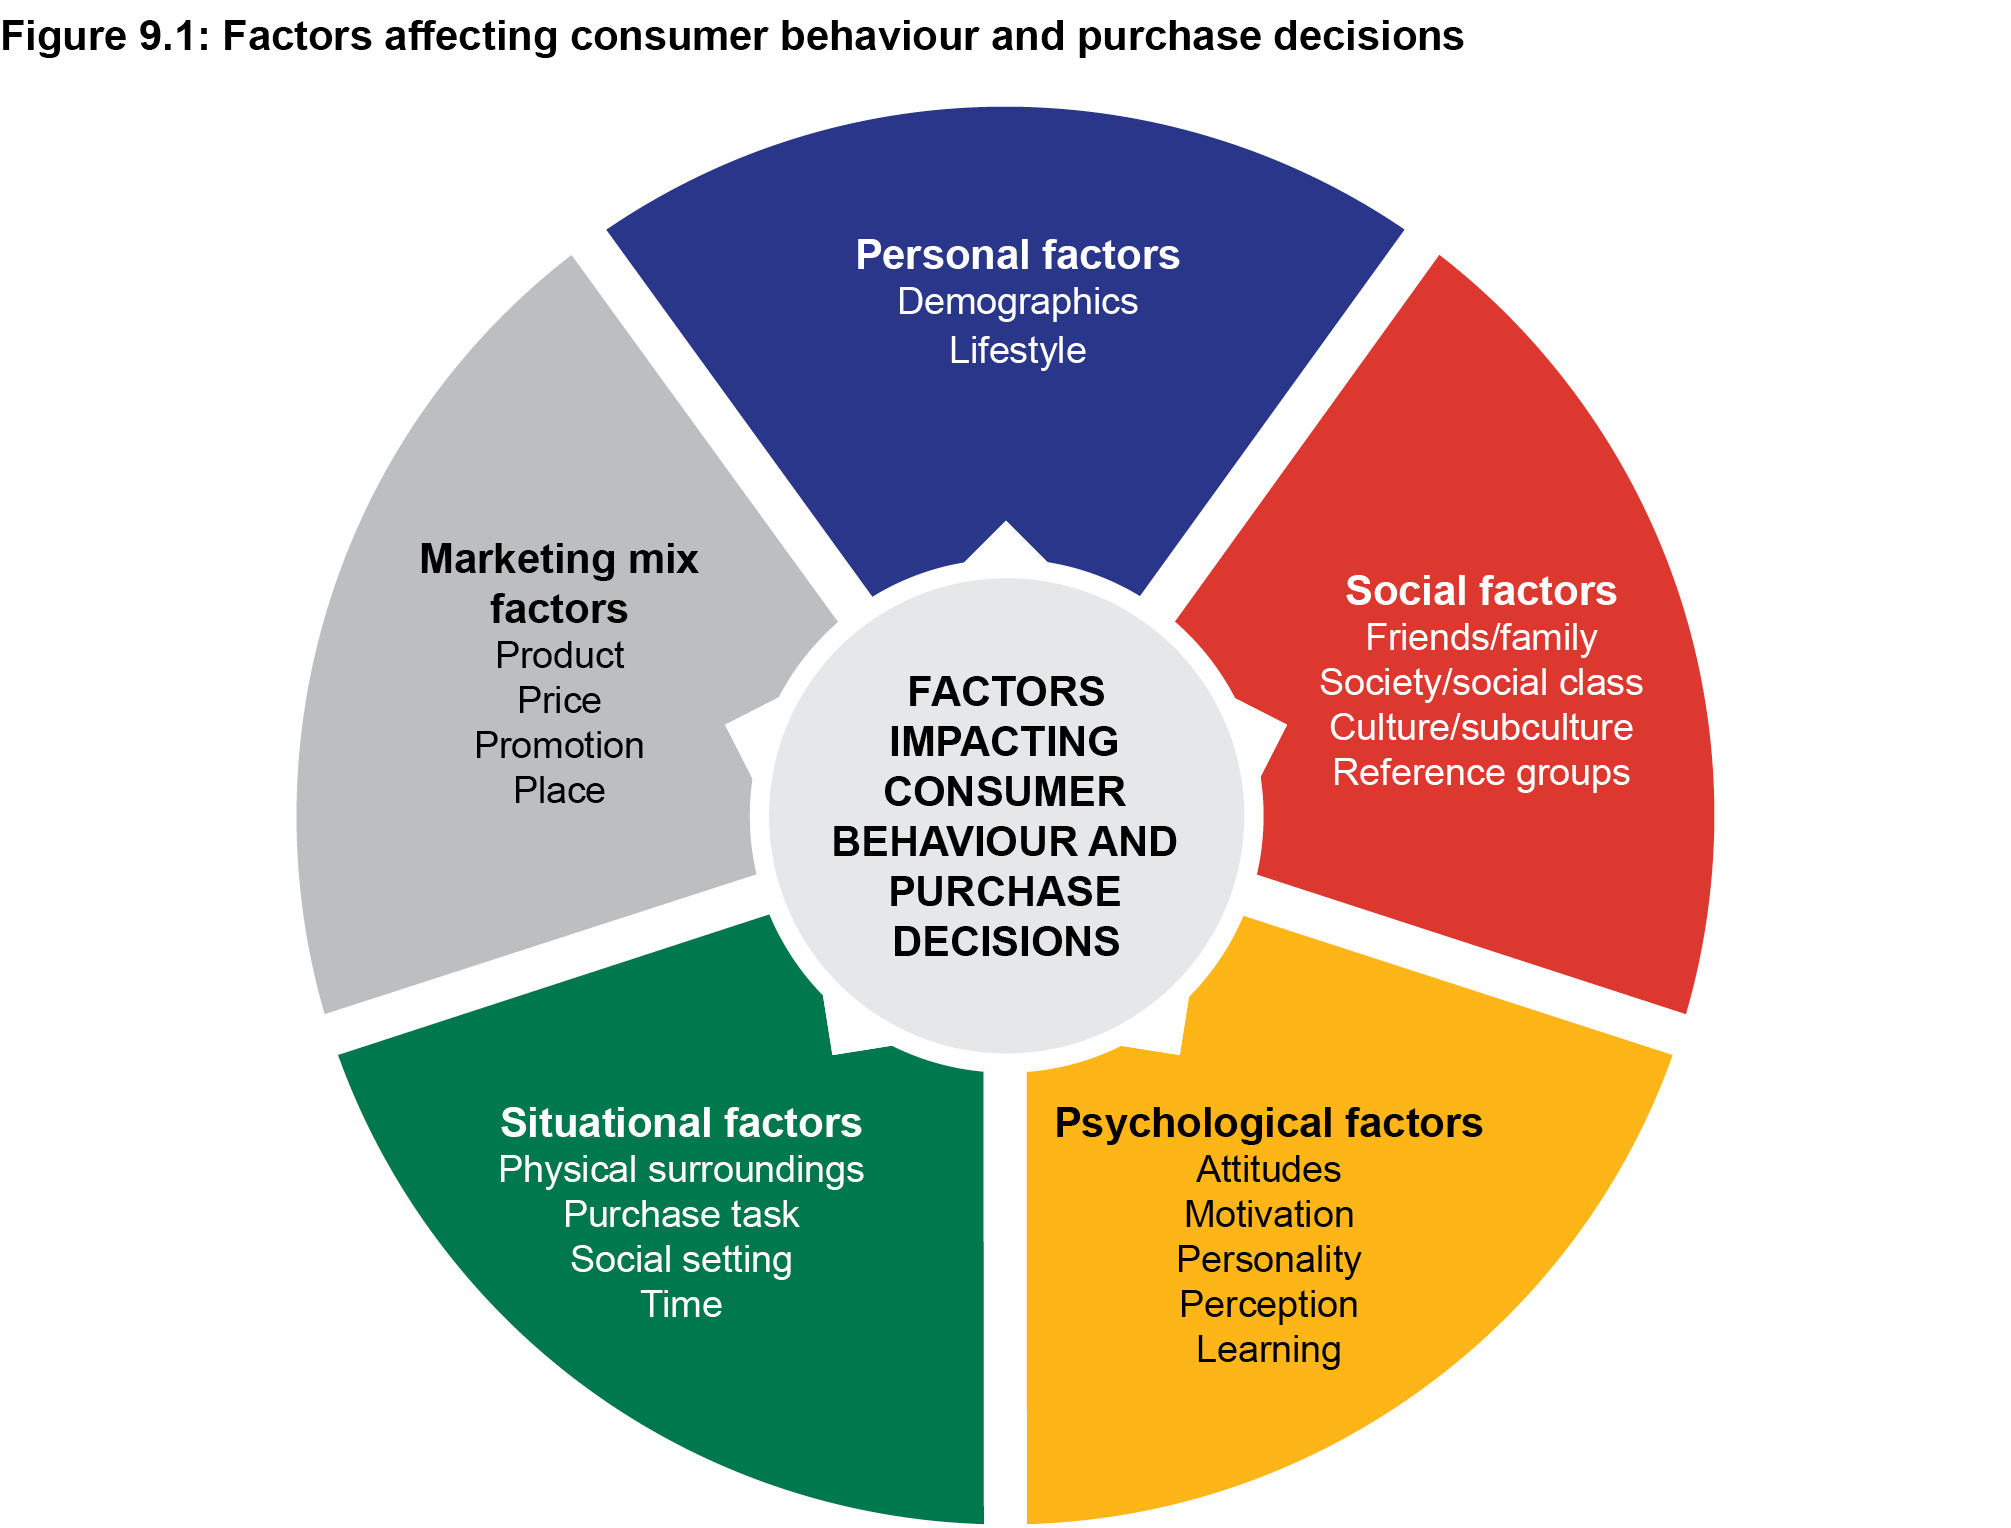 Factors affecting consumer behaviour and purchase decisions